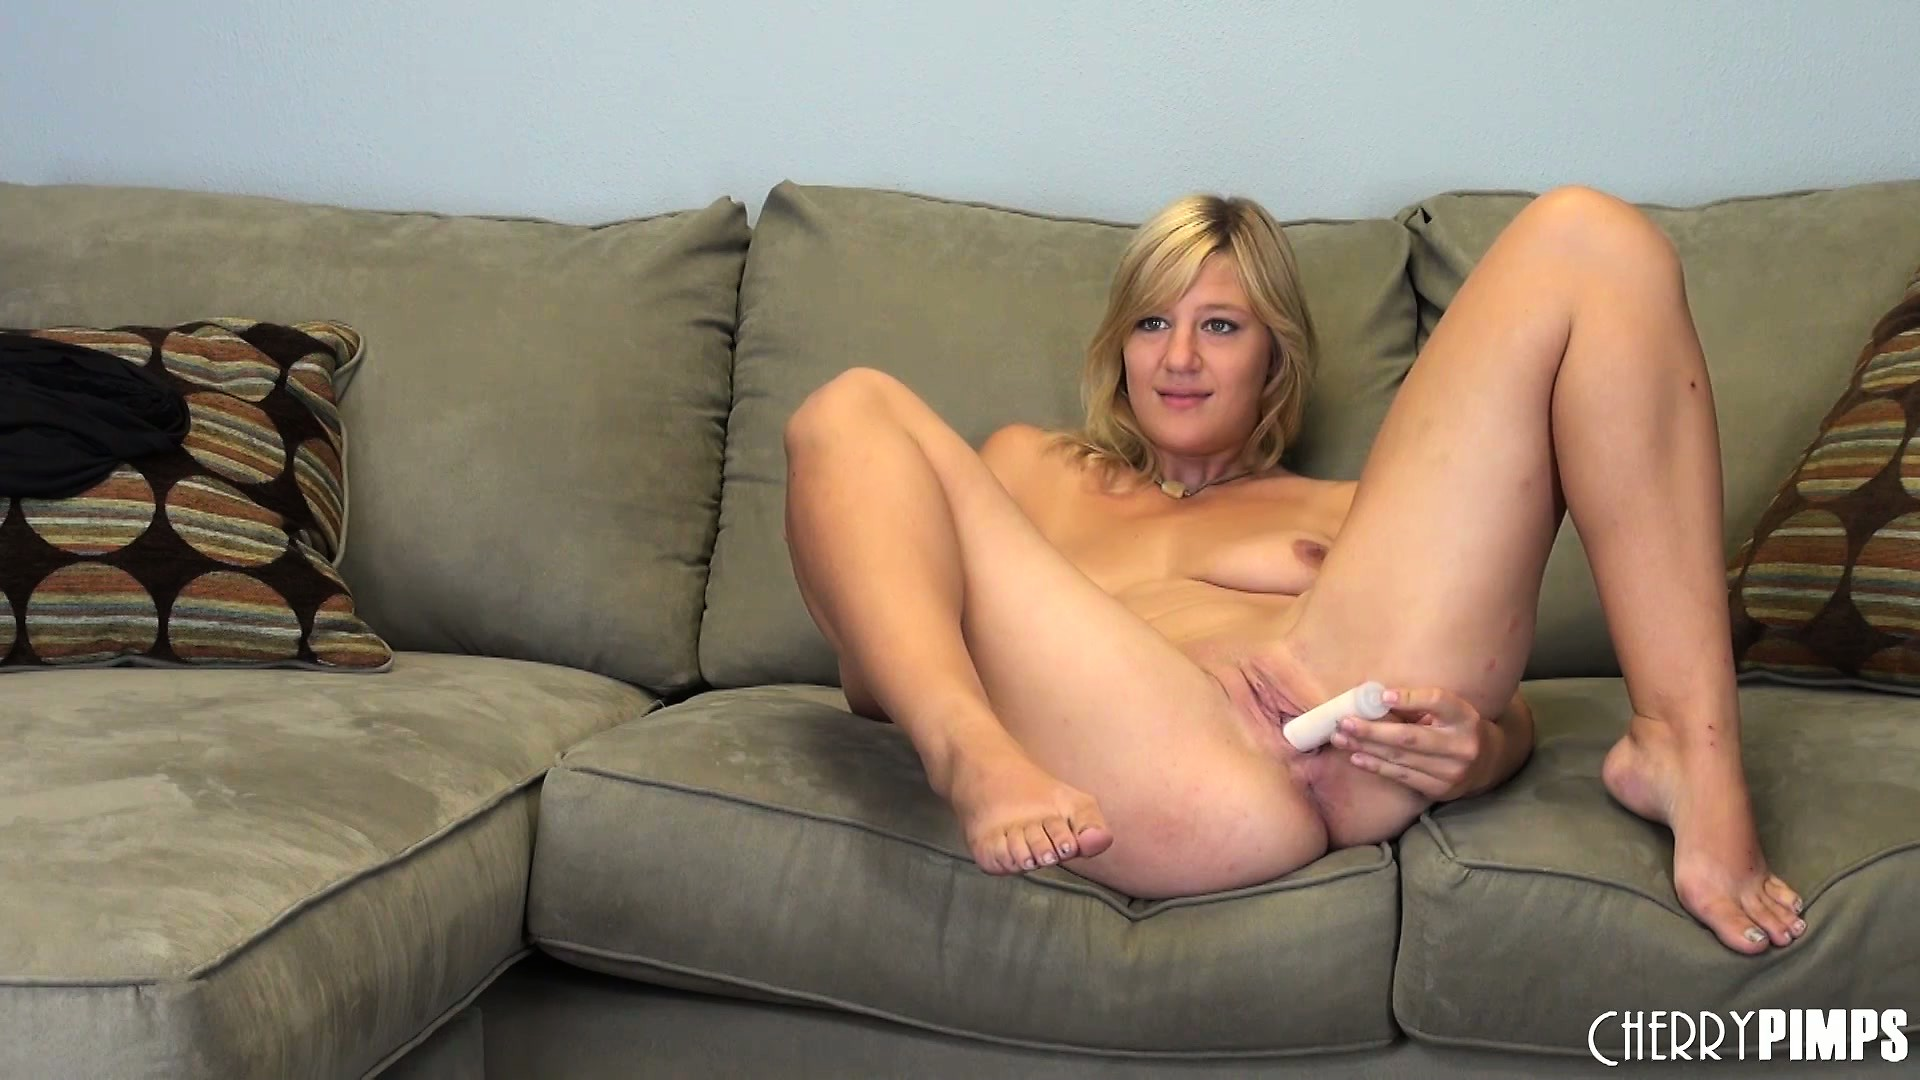 Porn Tube of Ashden Wells If Fond Of Toying With Her Magnificent Belly Entrance